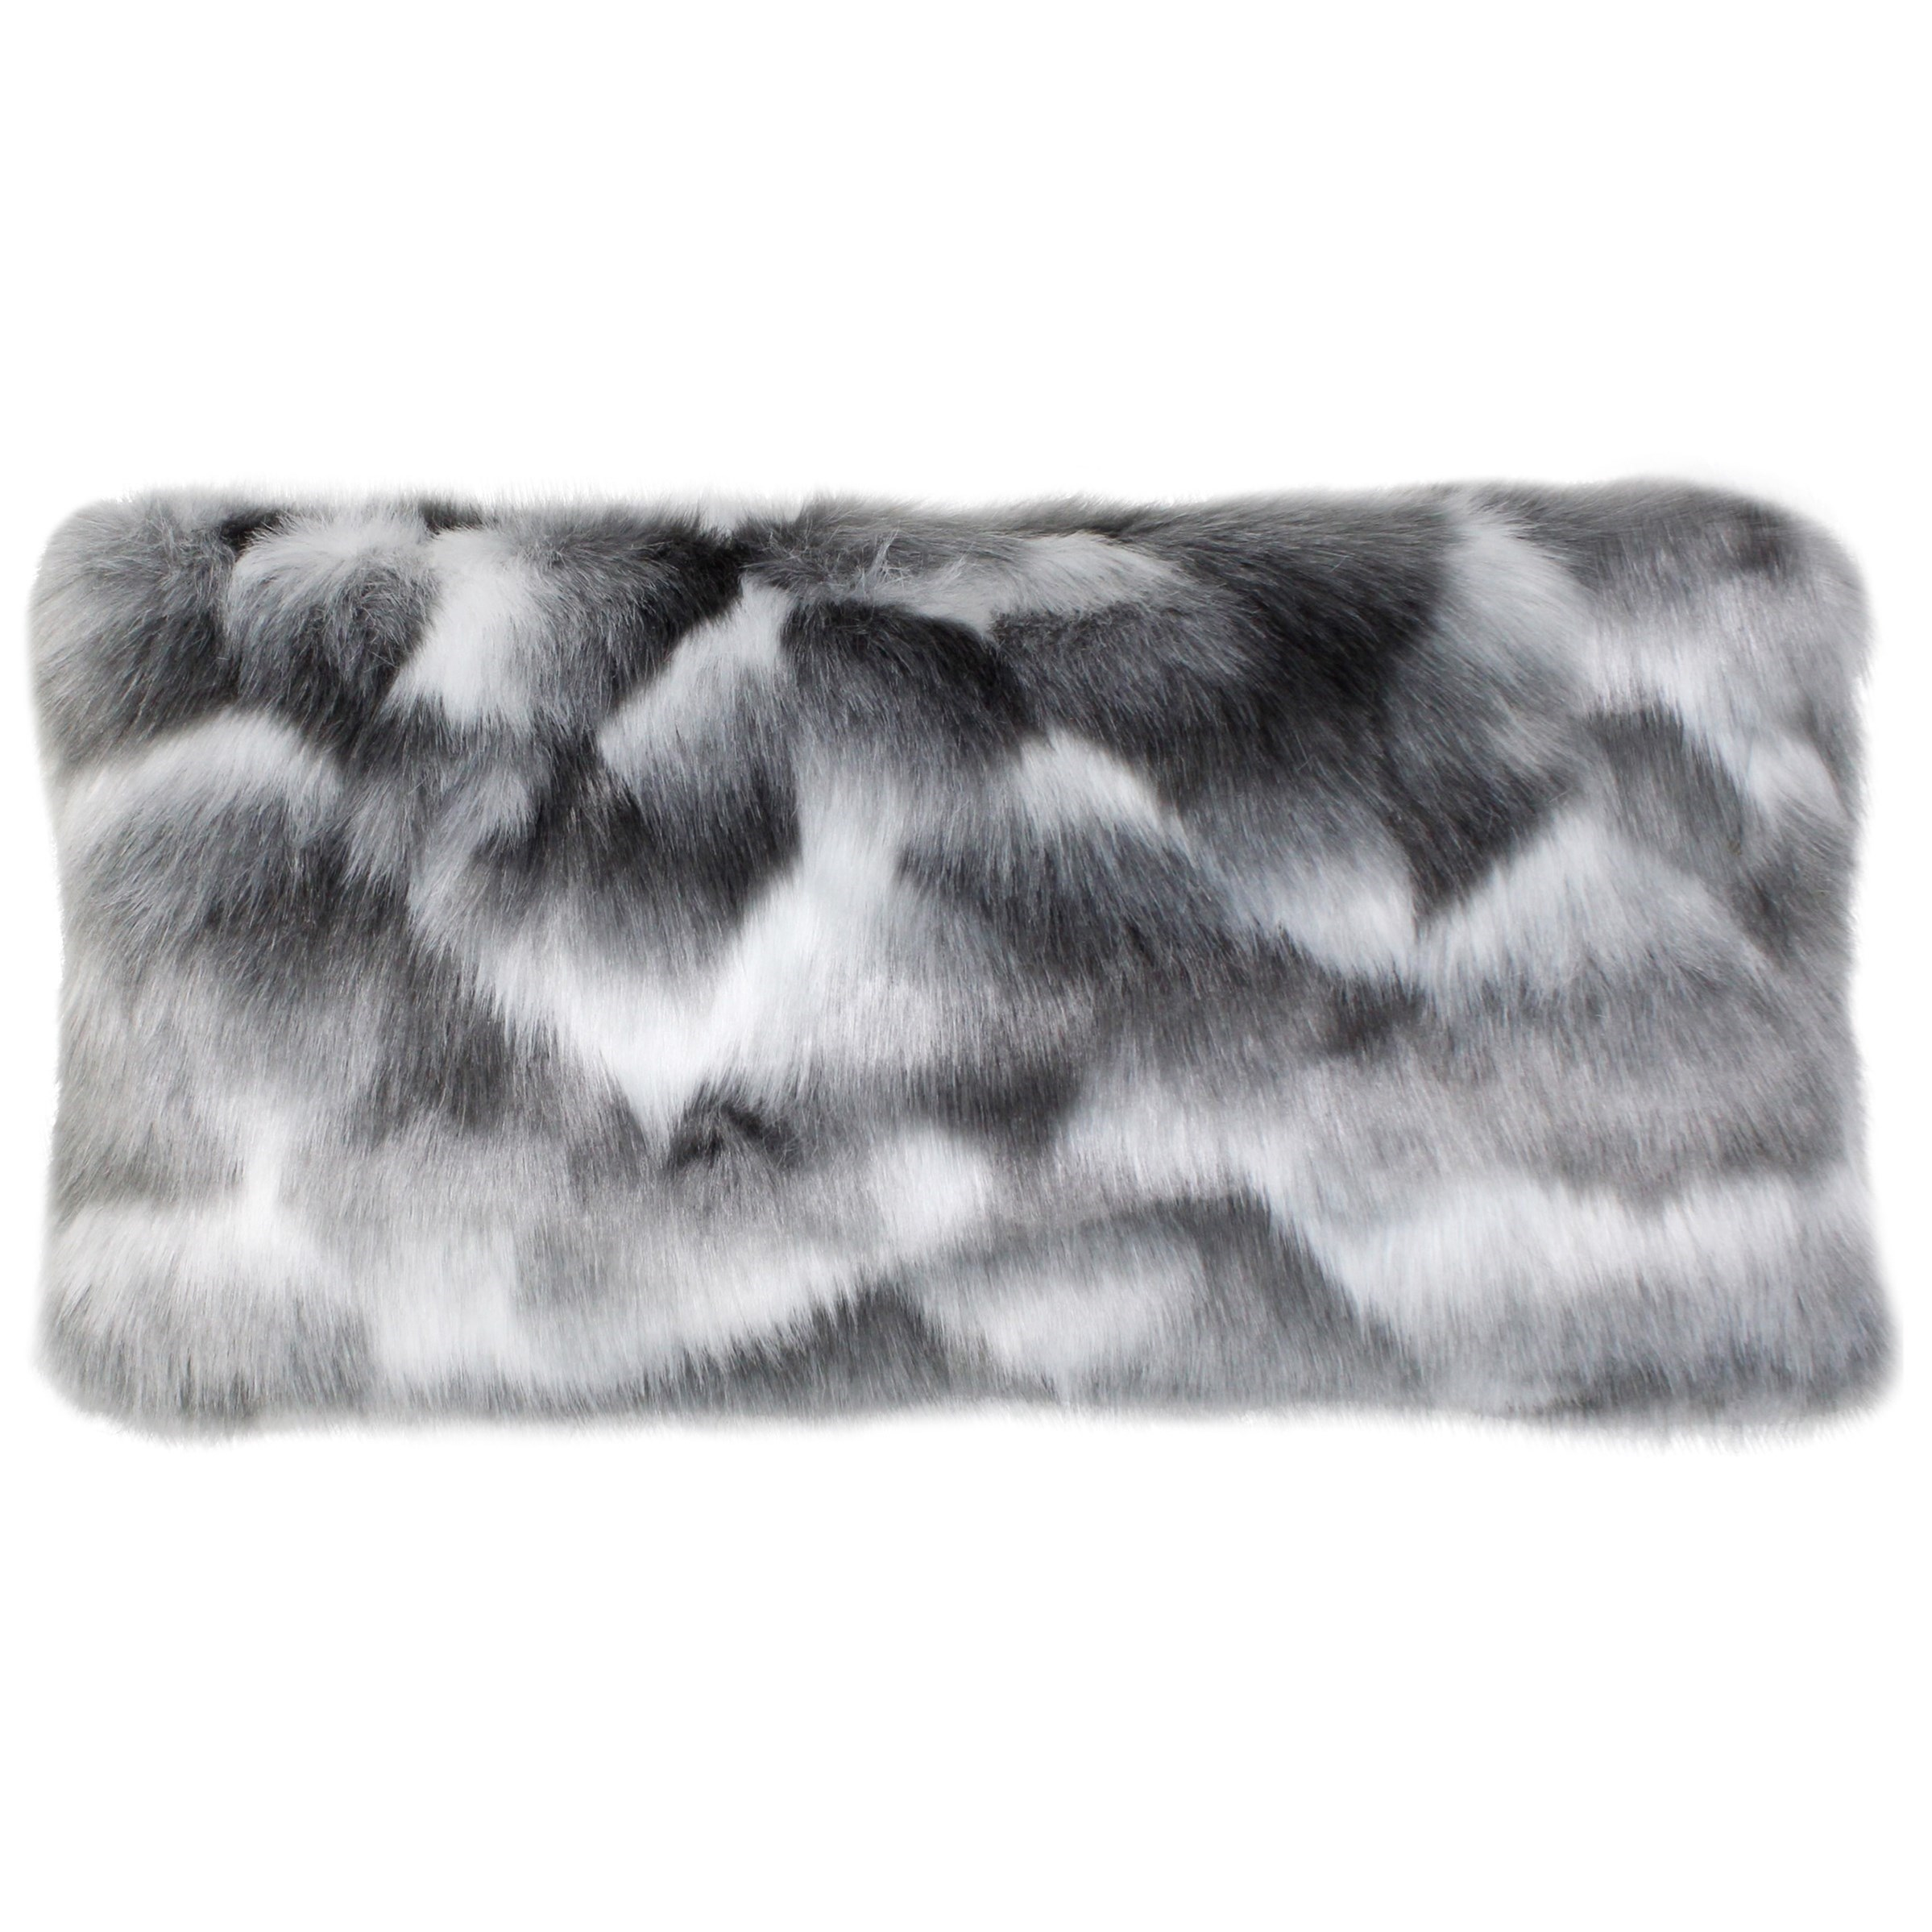 Accessories Faux Fur Pillw  by StyleCraft at Dream Home Interiors